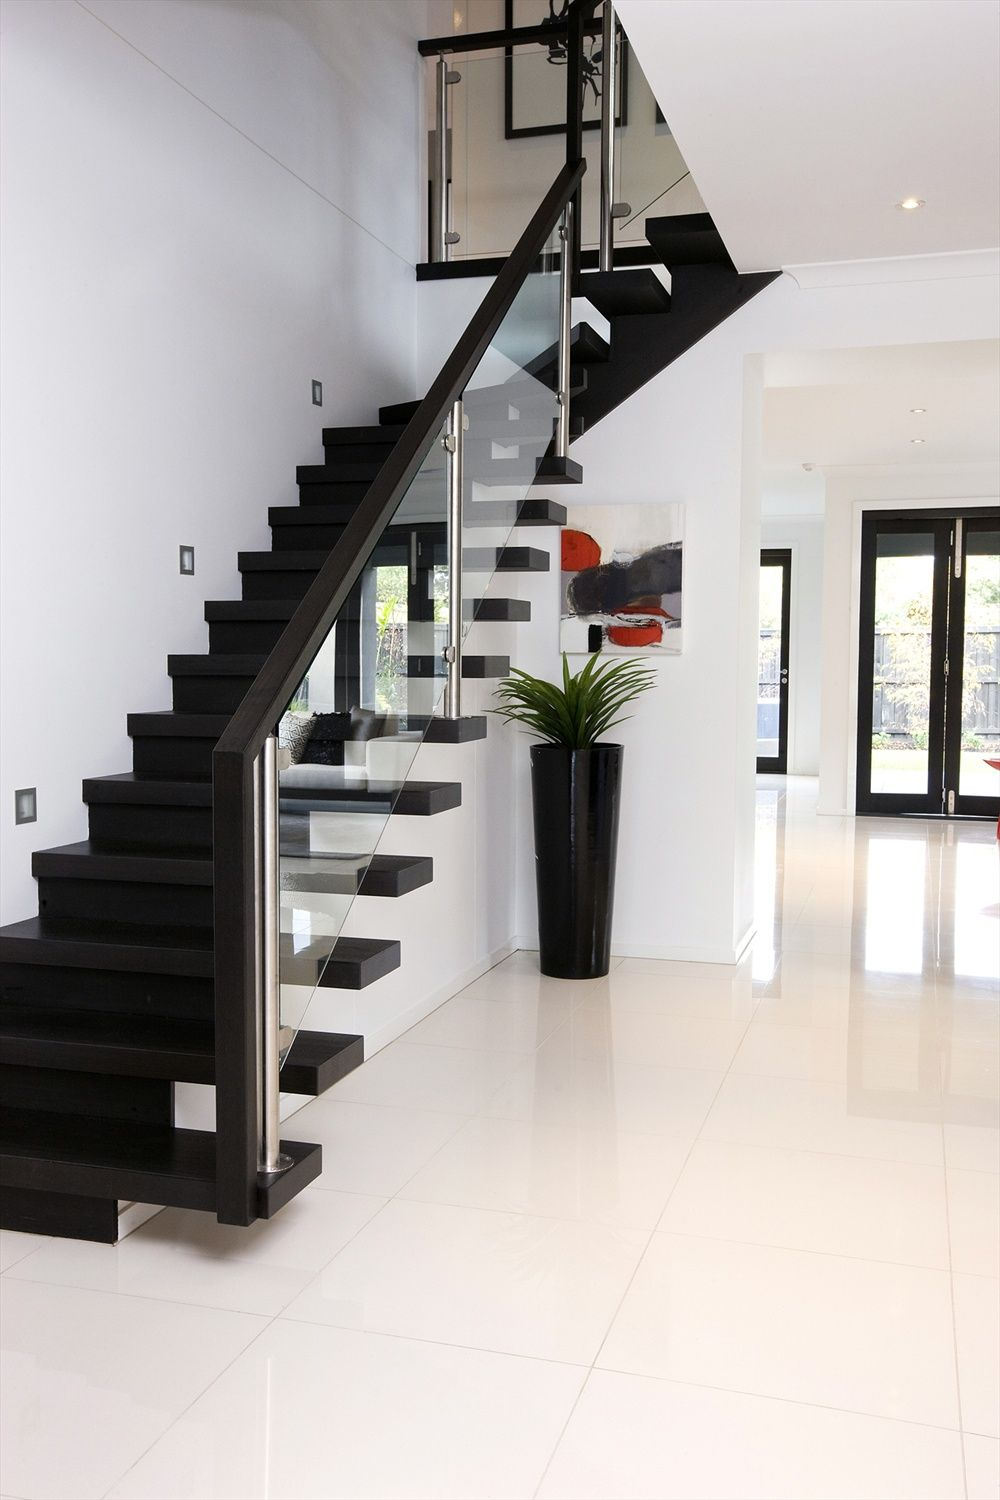 What Do You Think Of This Living Rooms Tile Idea I Got | Tiles Design For Stairs Wall